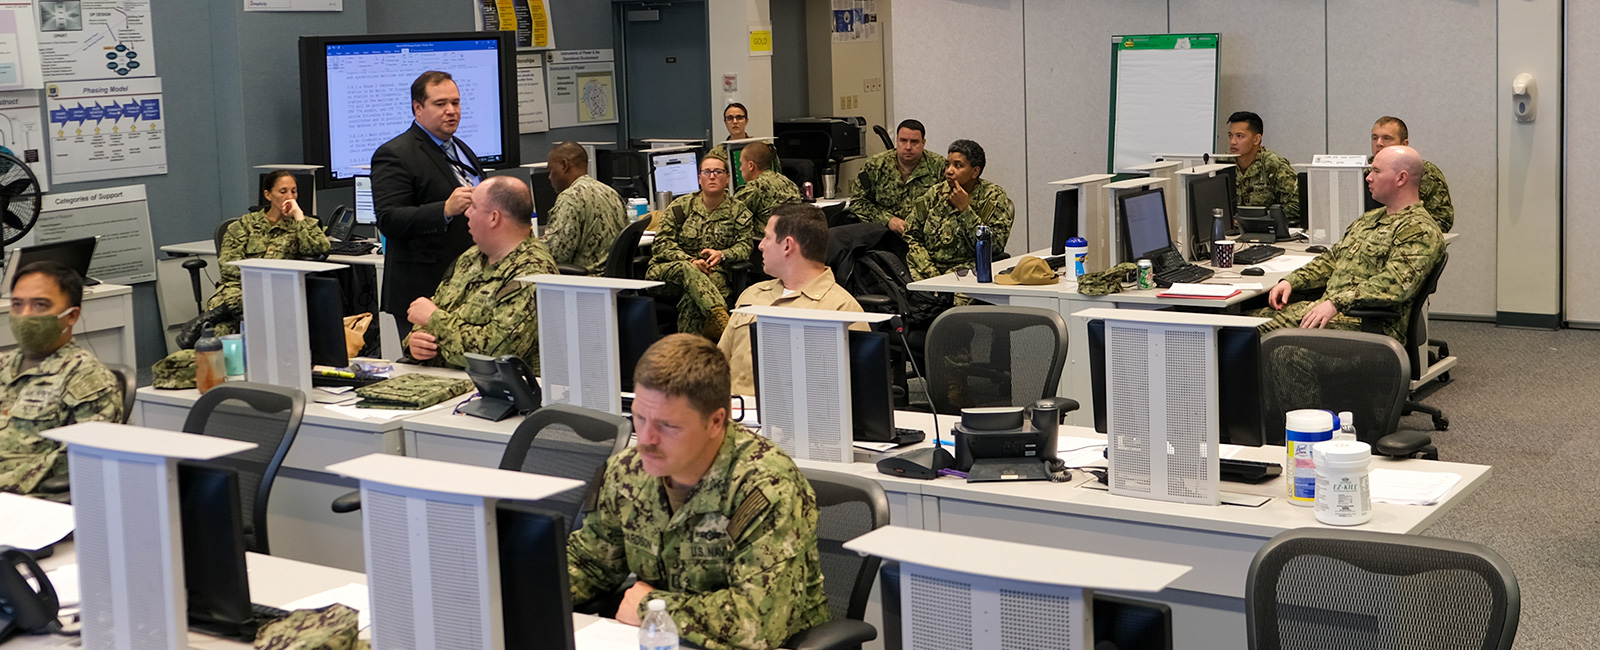 Students in the Maritime Staff Operators Course at the U.S. Naval War College listen to a lecture.